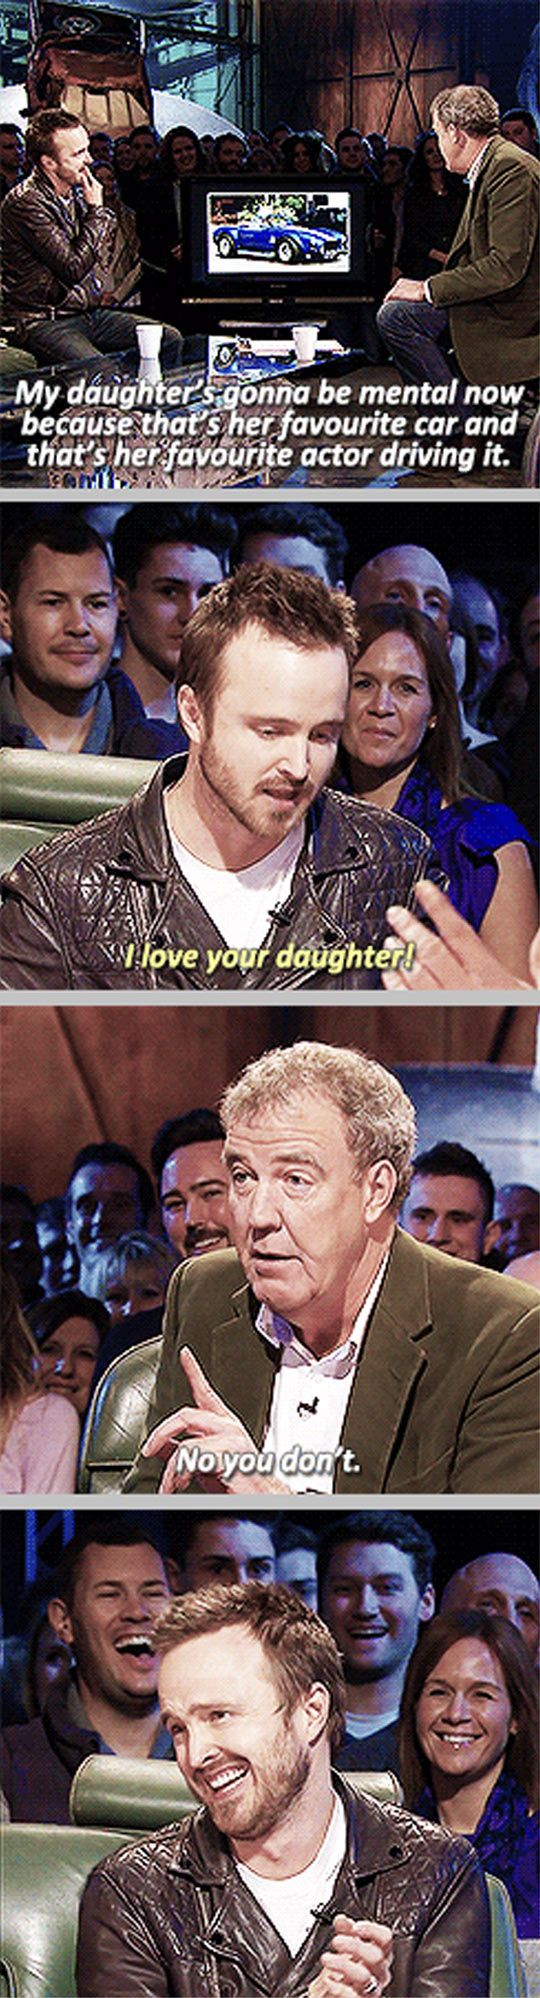 This is why I like top gear